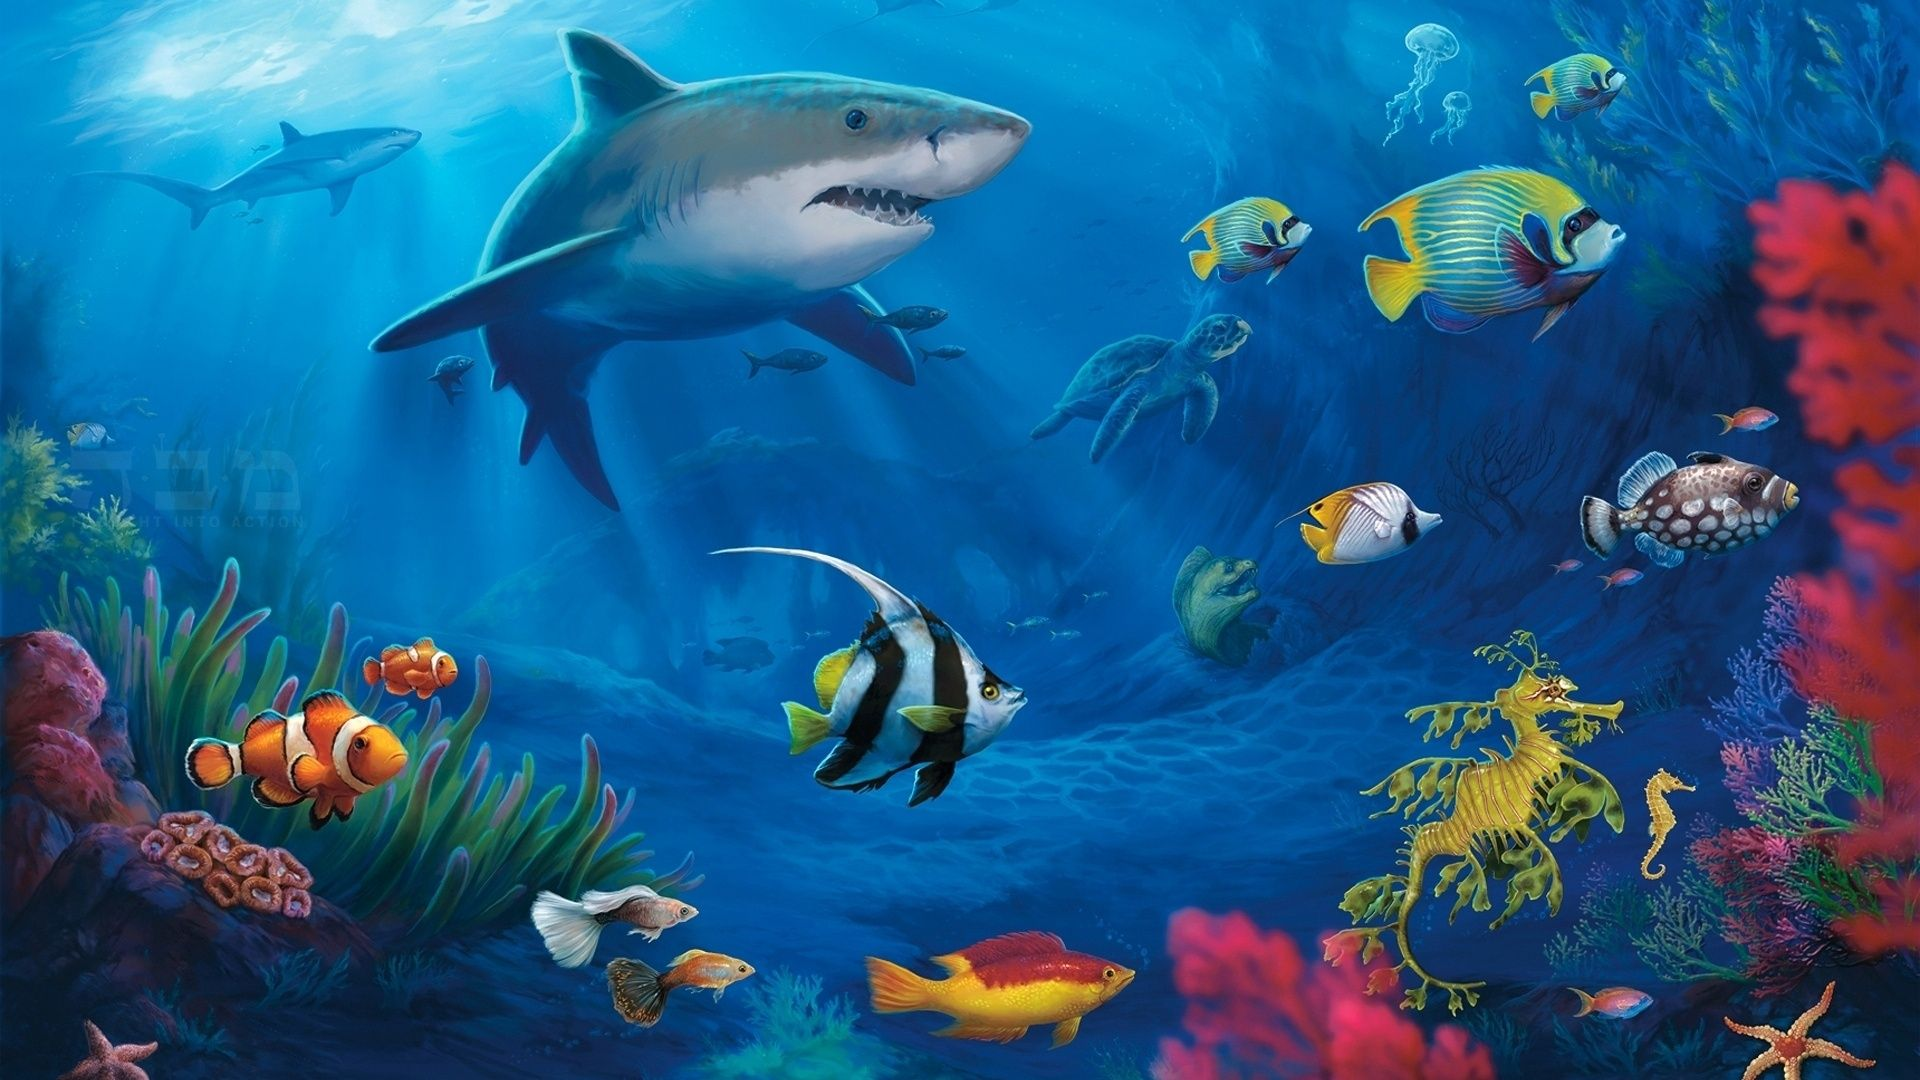 60 Live Backgrounds For Pc Free Download Fish Wallpaper Live Fish Wallpaper Underwater Wallpaper